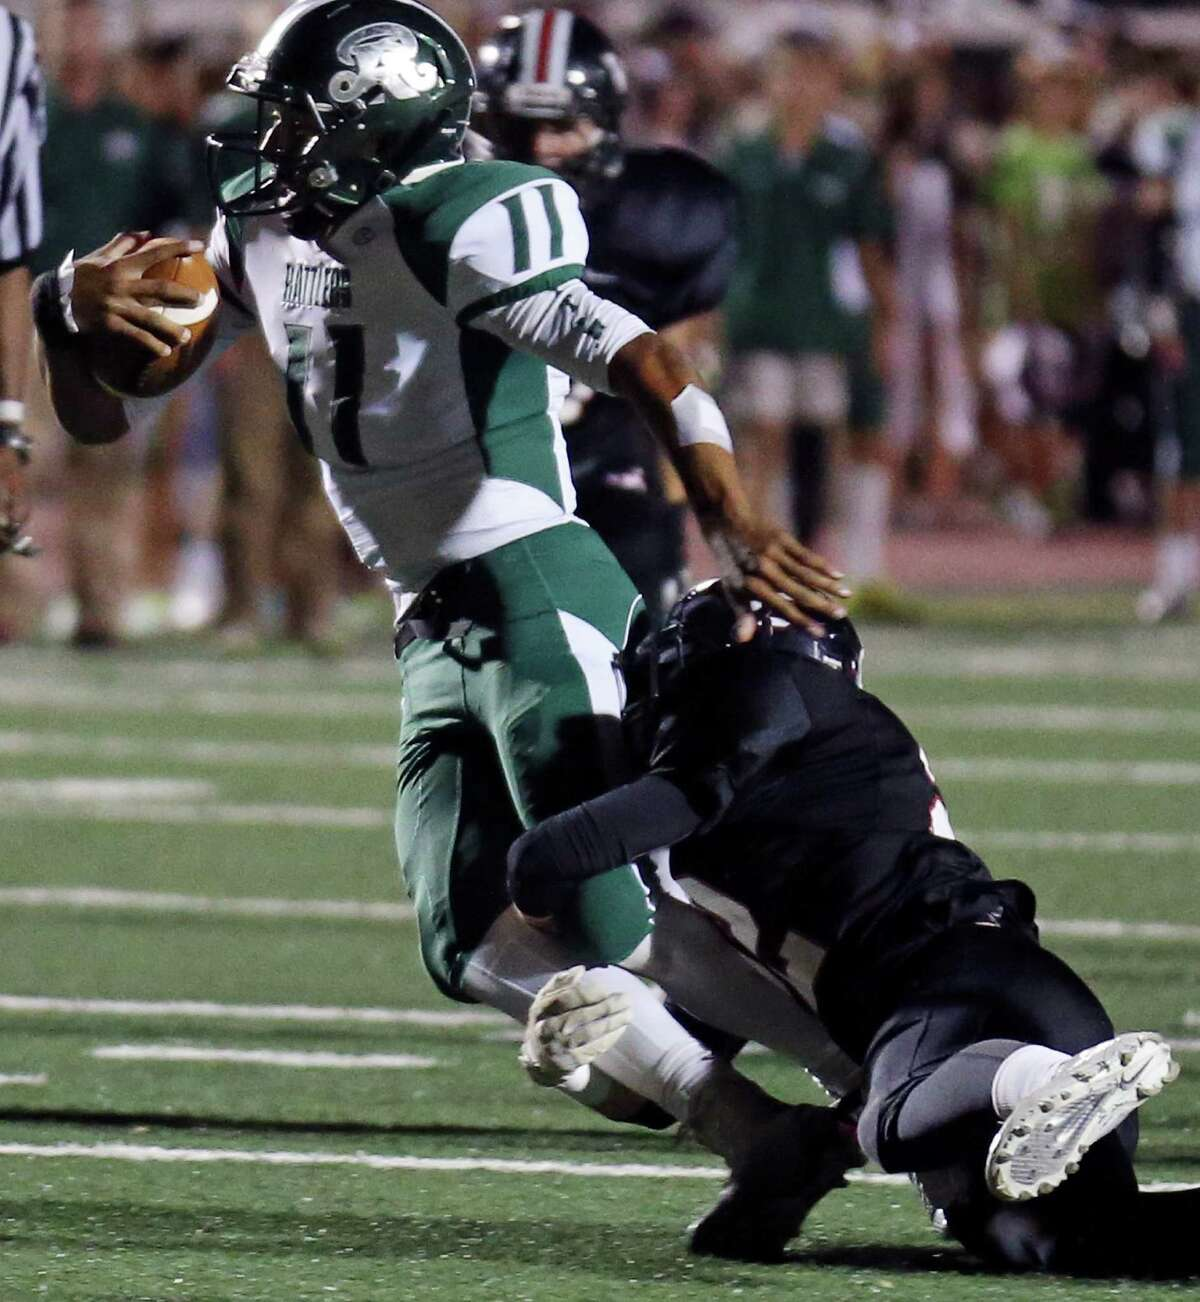 Reagan's Kellen Mond tries to shake the tackle of Churchill's Kyle Pollard during first half action Friday Oct. 17, 2014 at Jerry Comalander Stadium.